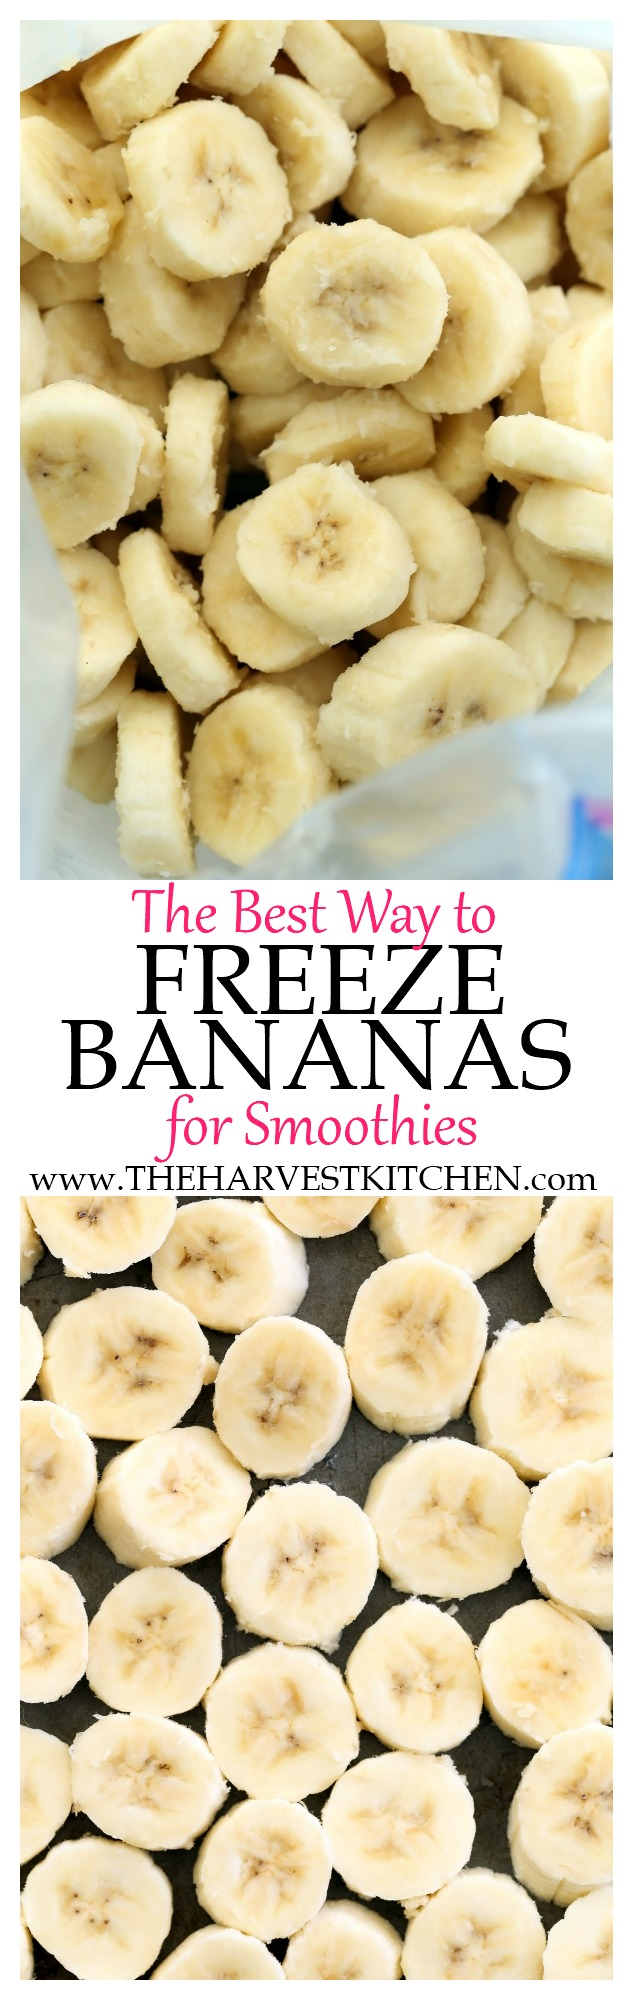 how-to-freeze-bananas-for-smoothies